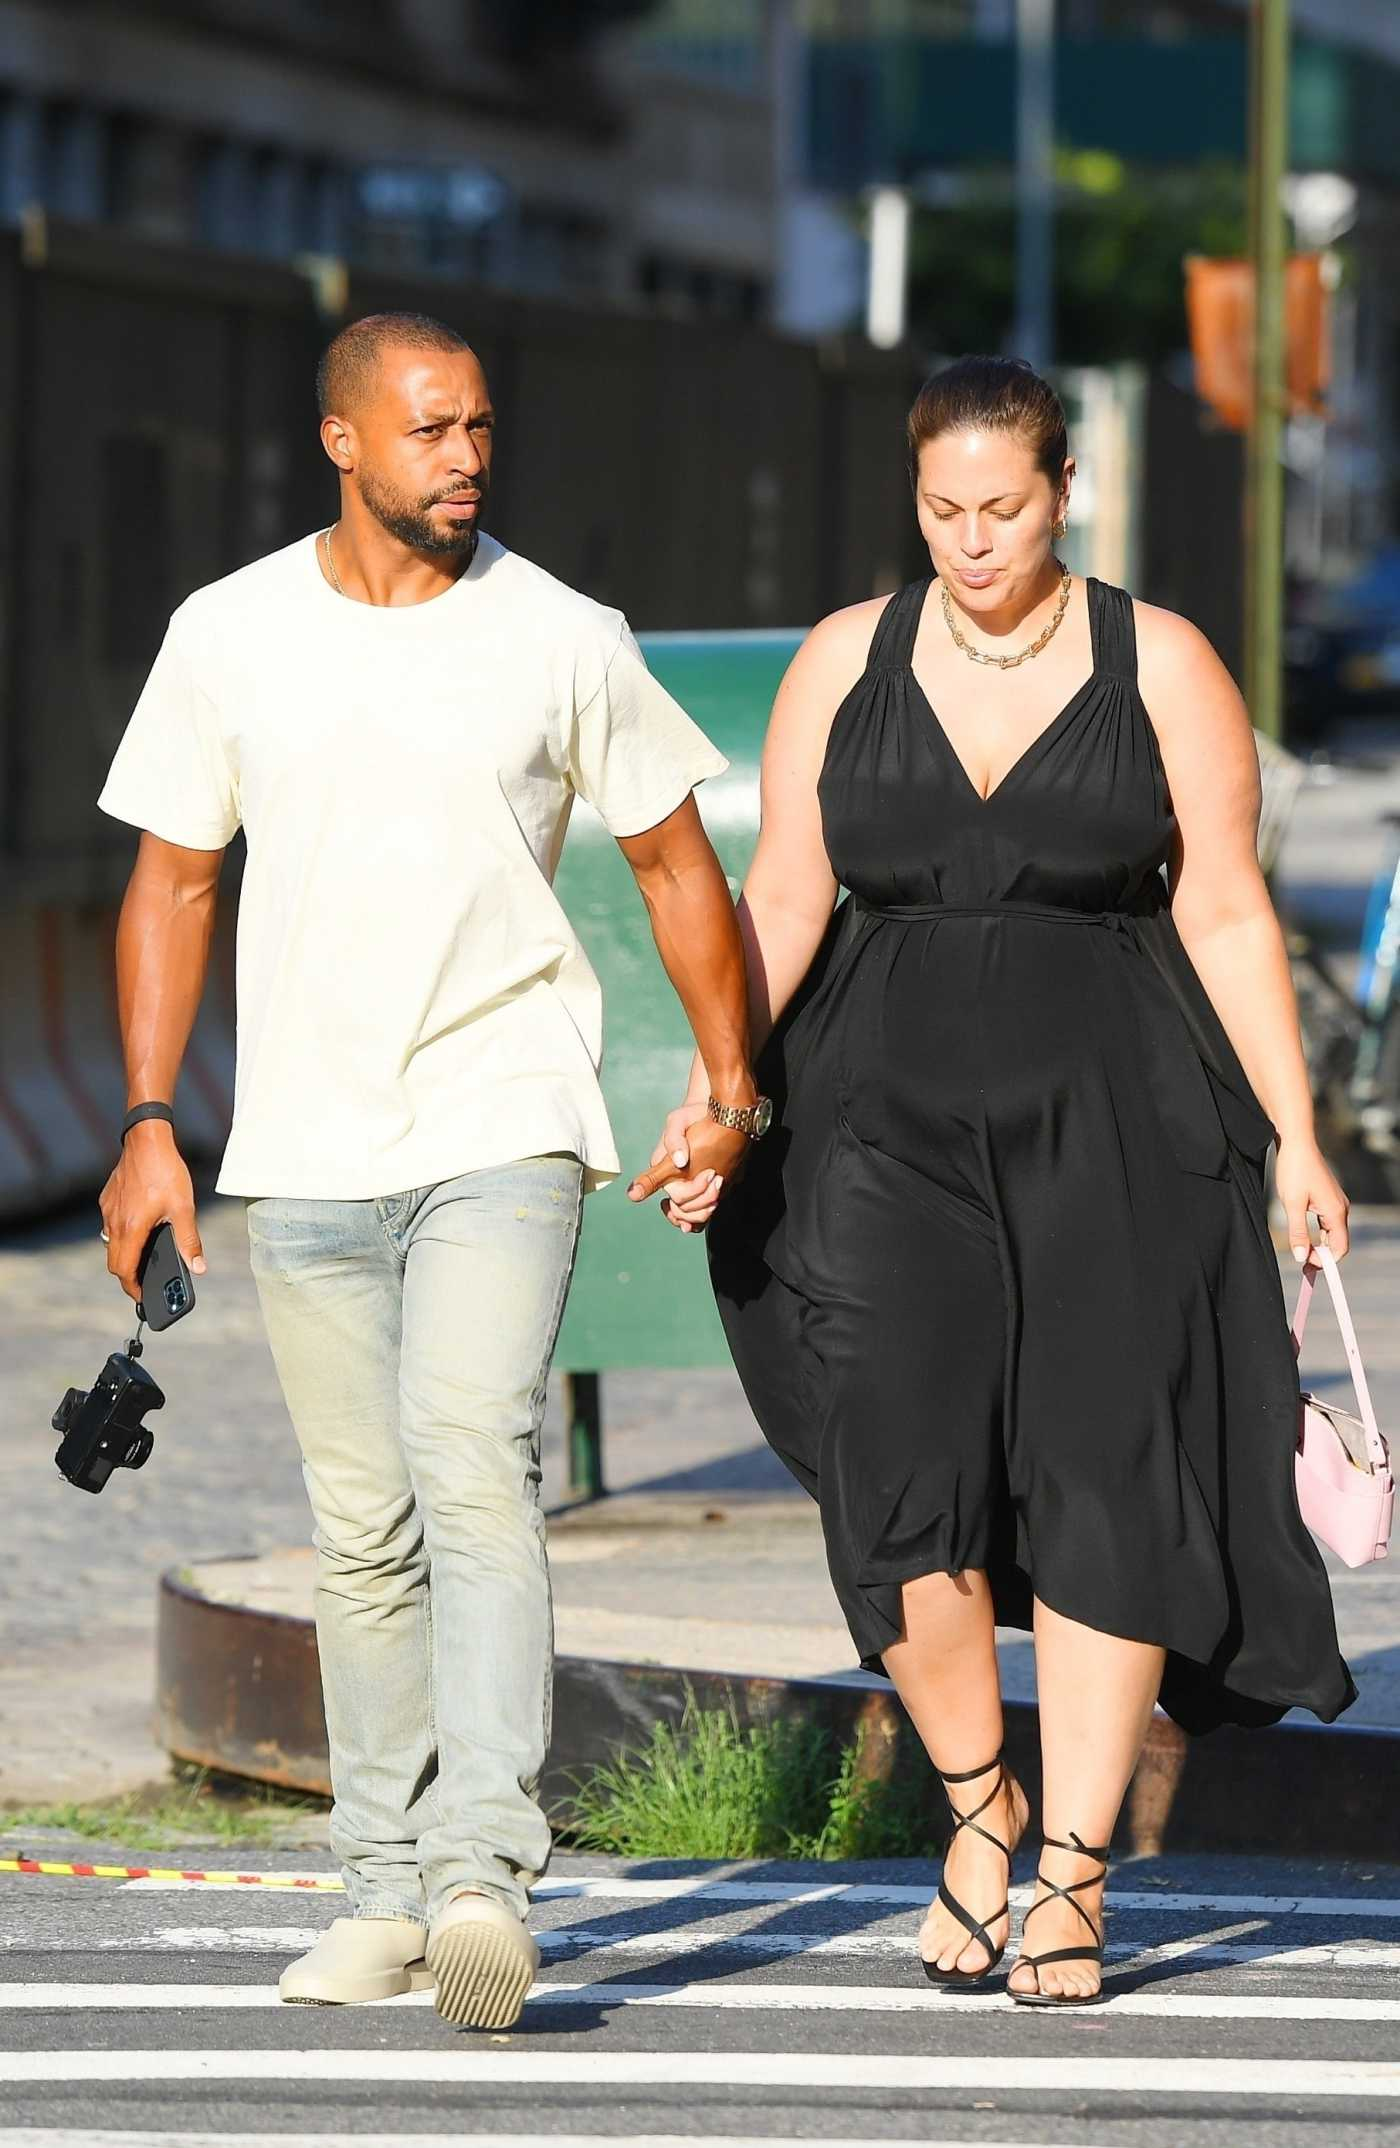 Ashley Graham in a Black Dress Was Seen Out with Her Husband Justin Ervin in Tribeca, New York 07/19/2021